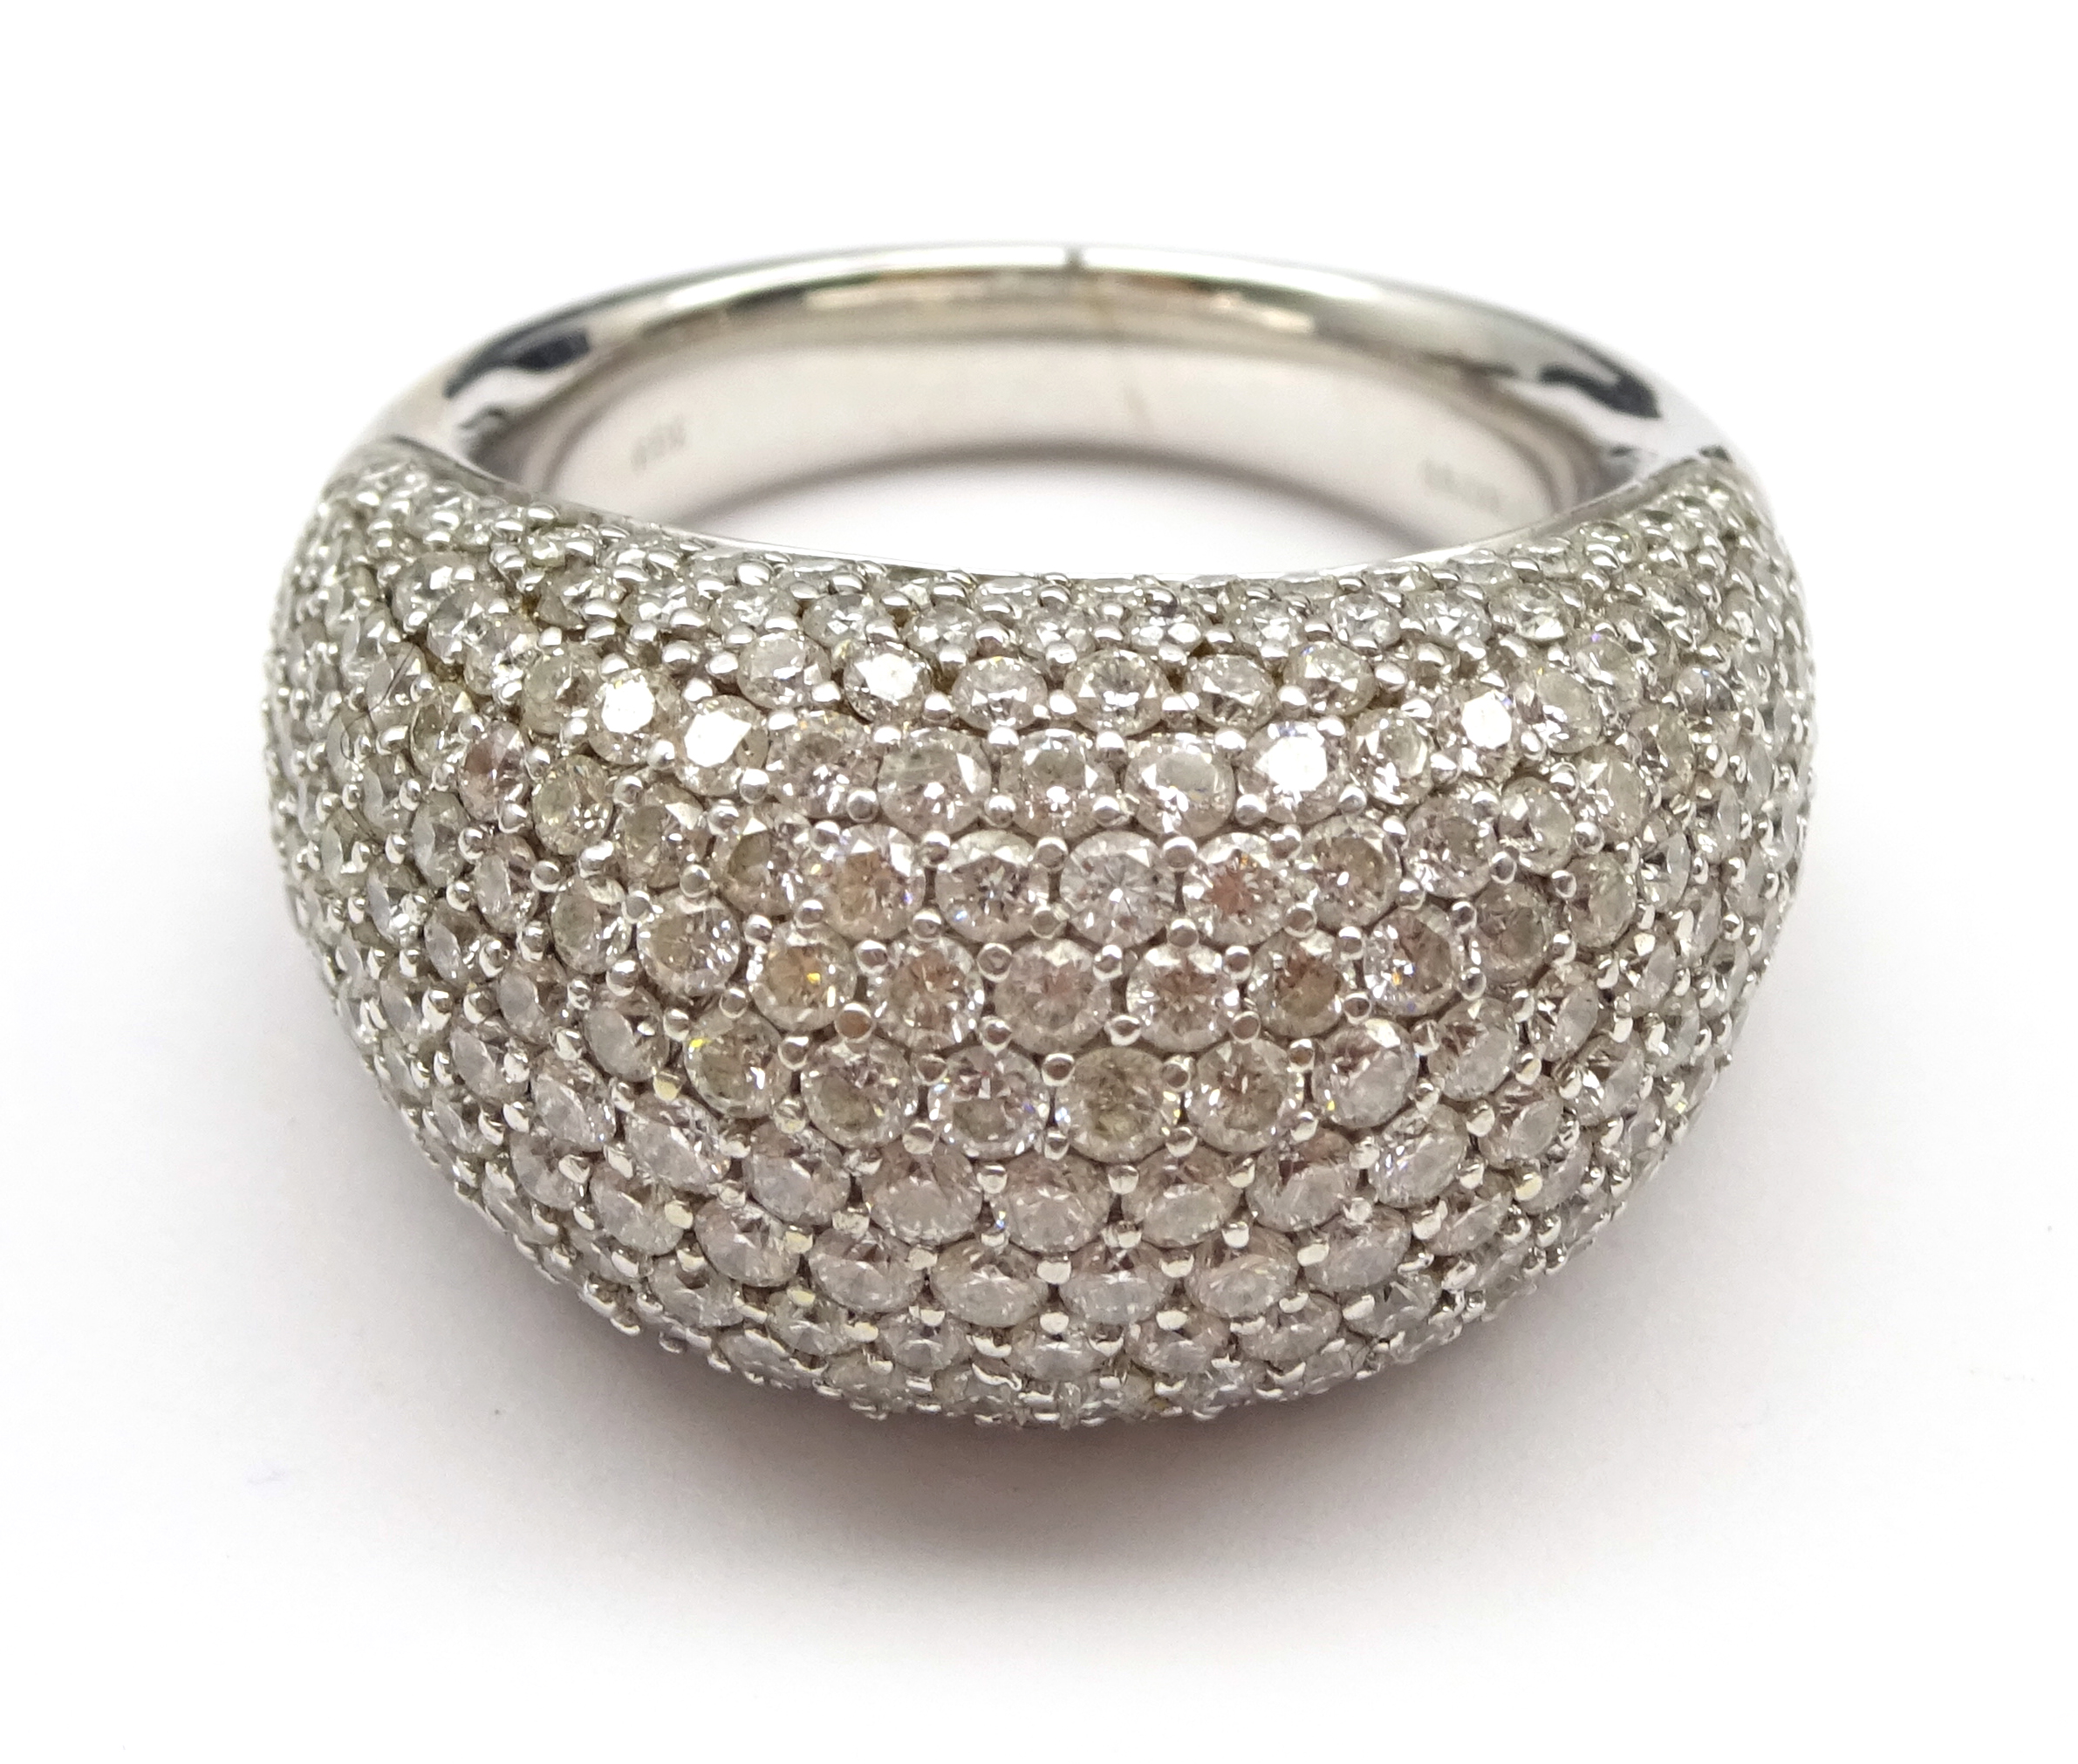 Lot 1053 - 18ct white gold diamond bomb ring, stamped 18K 750, diamond total weight 4.